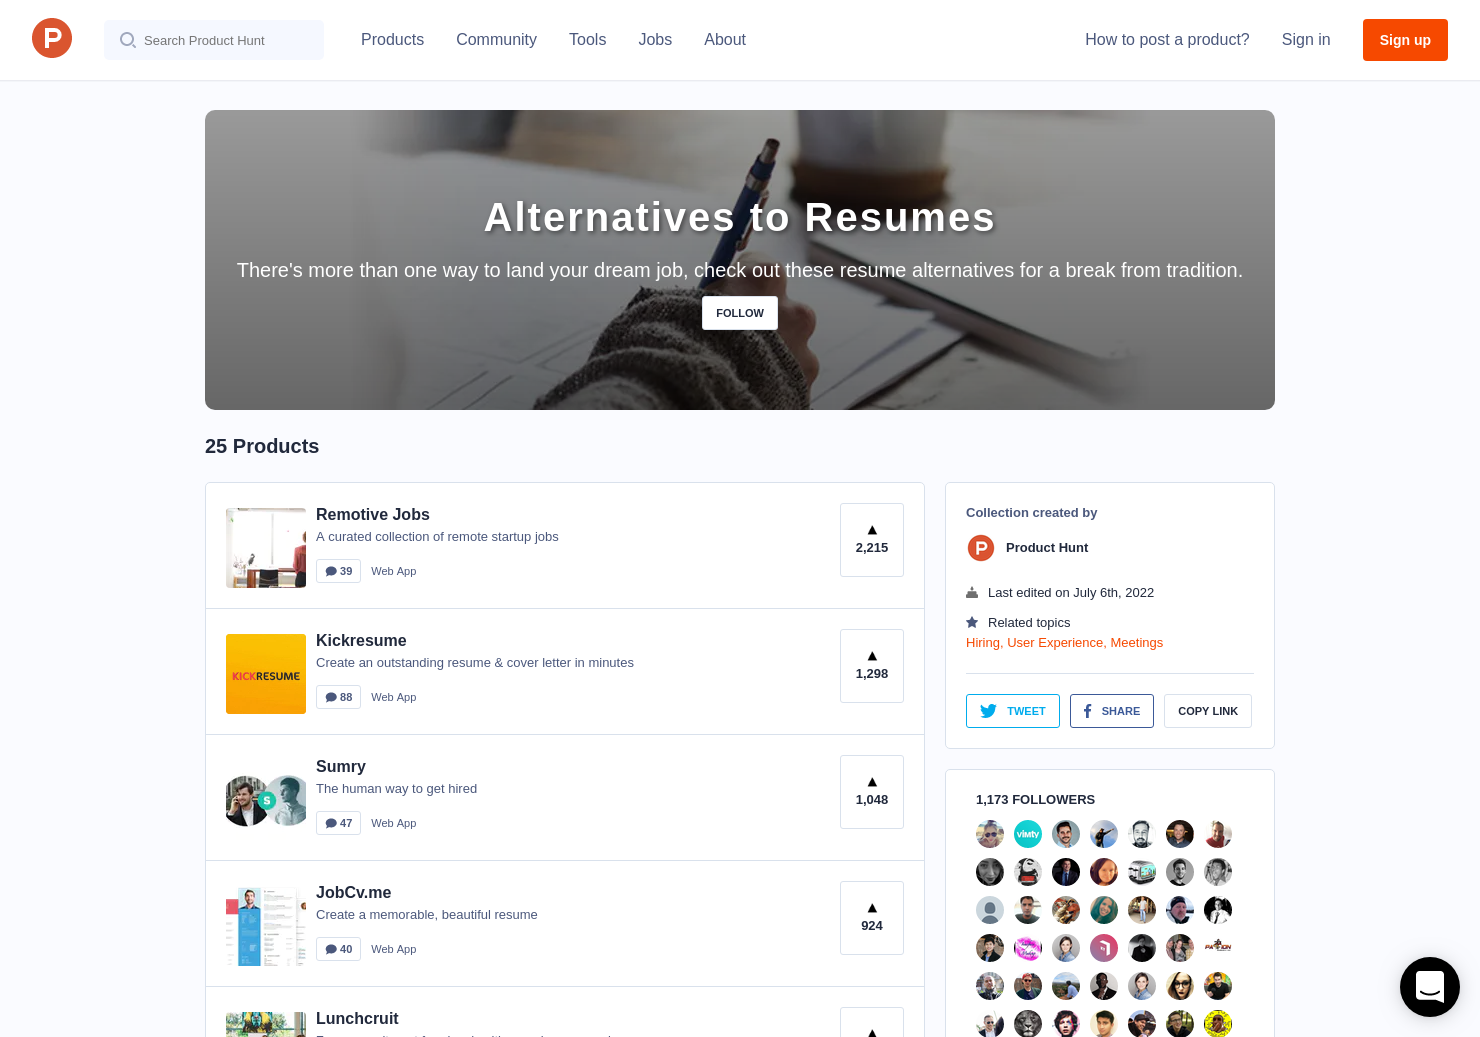 alternatives to resumes product hunt resume check